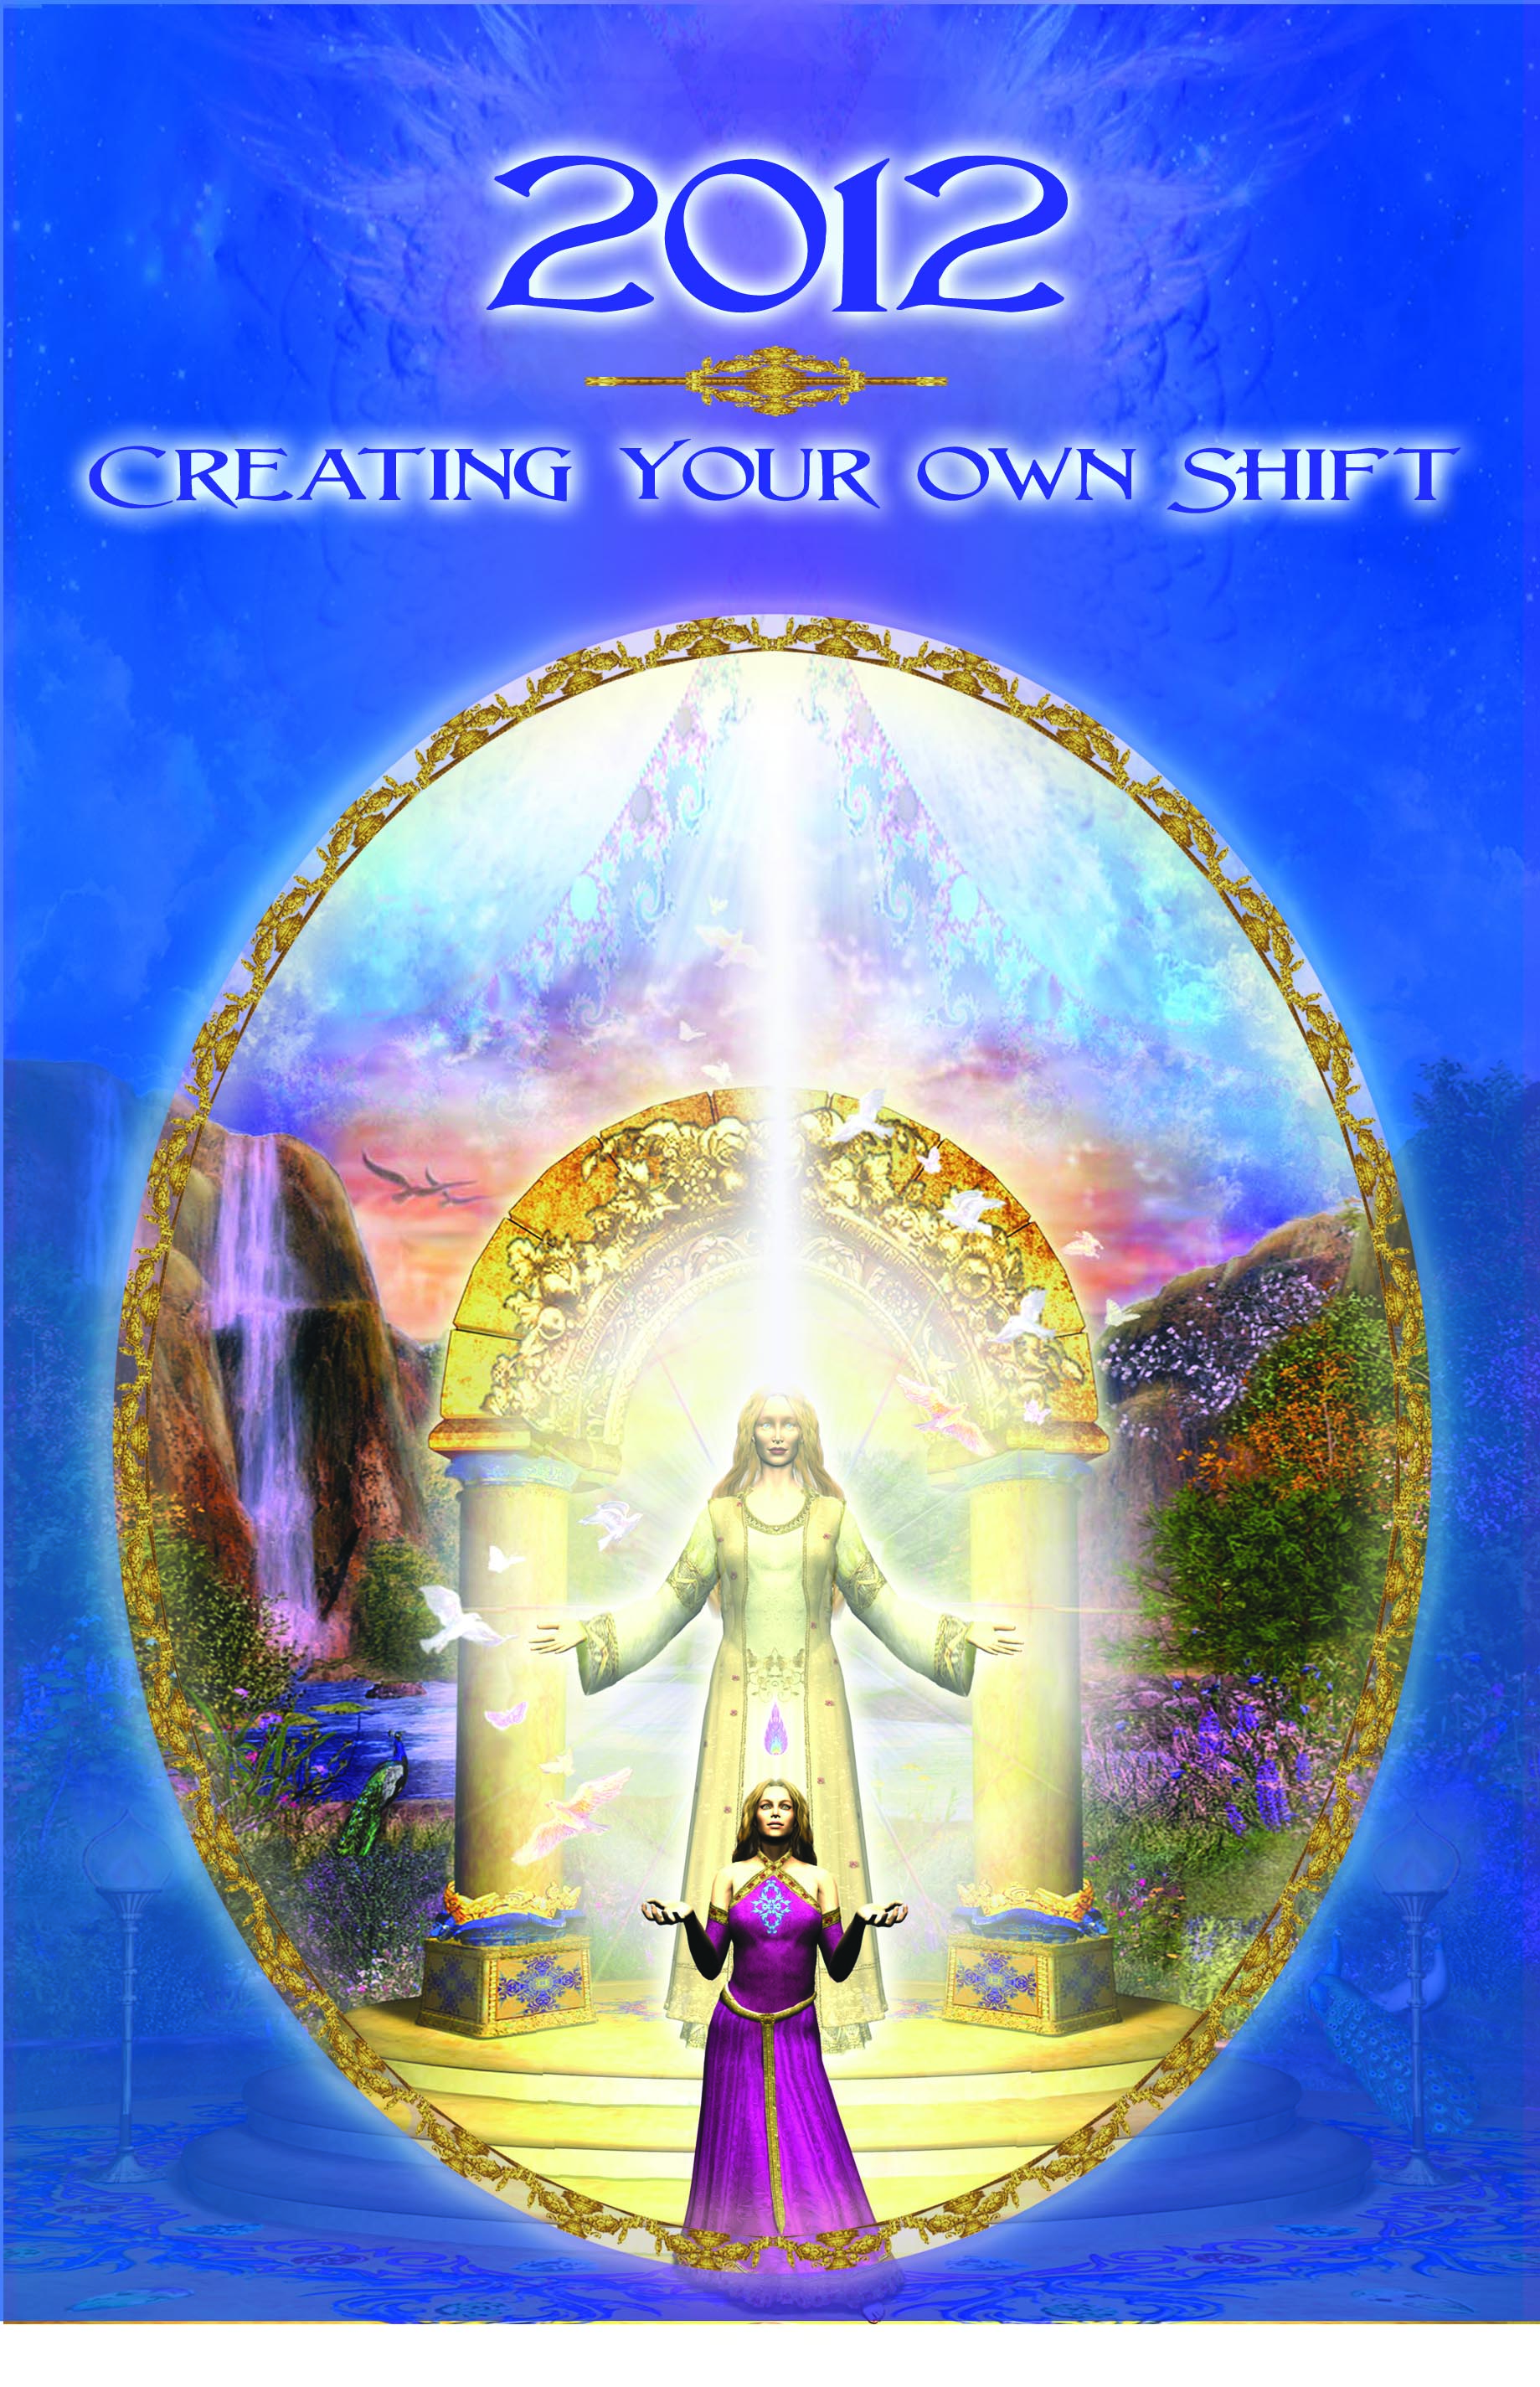 2012: Creating Your Own Shift